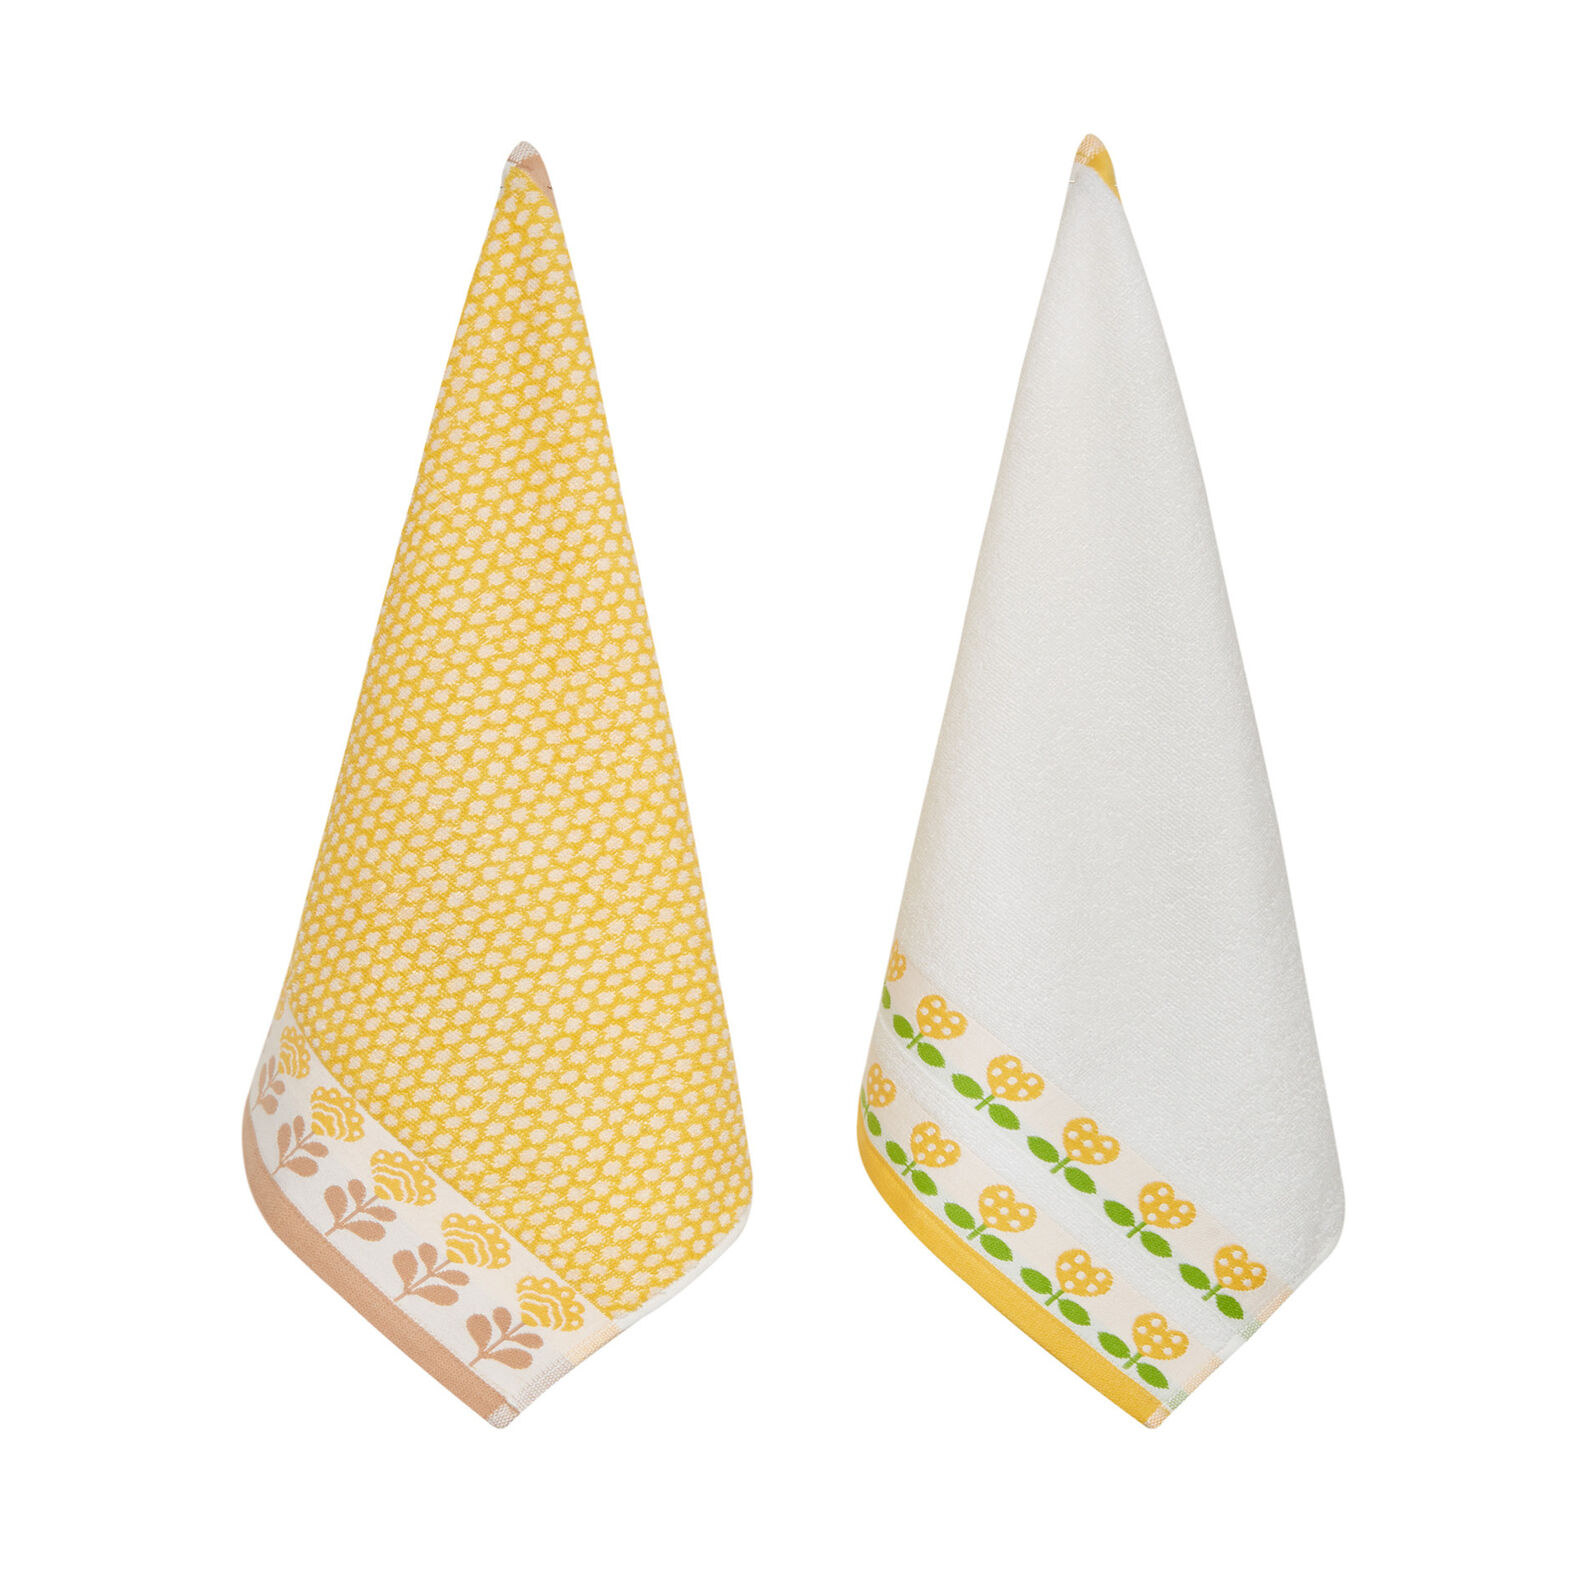 2-pack tea towels in cotton terry with embroidery